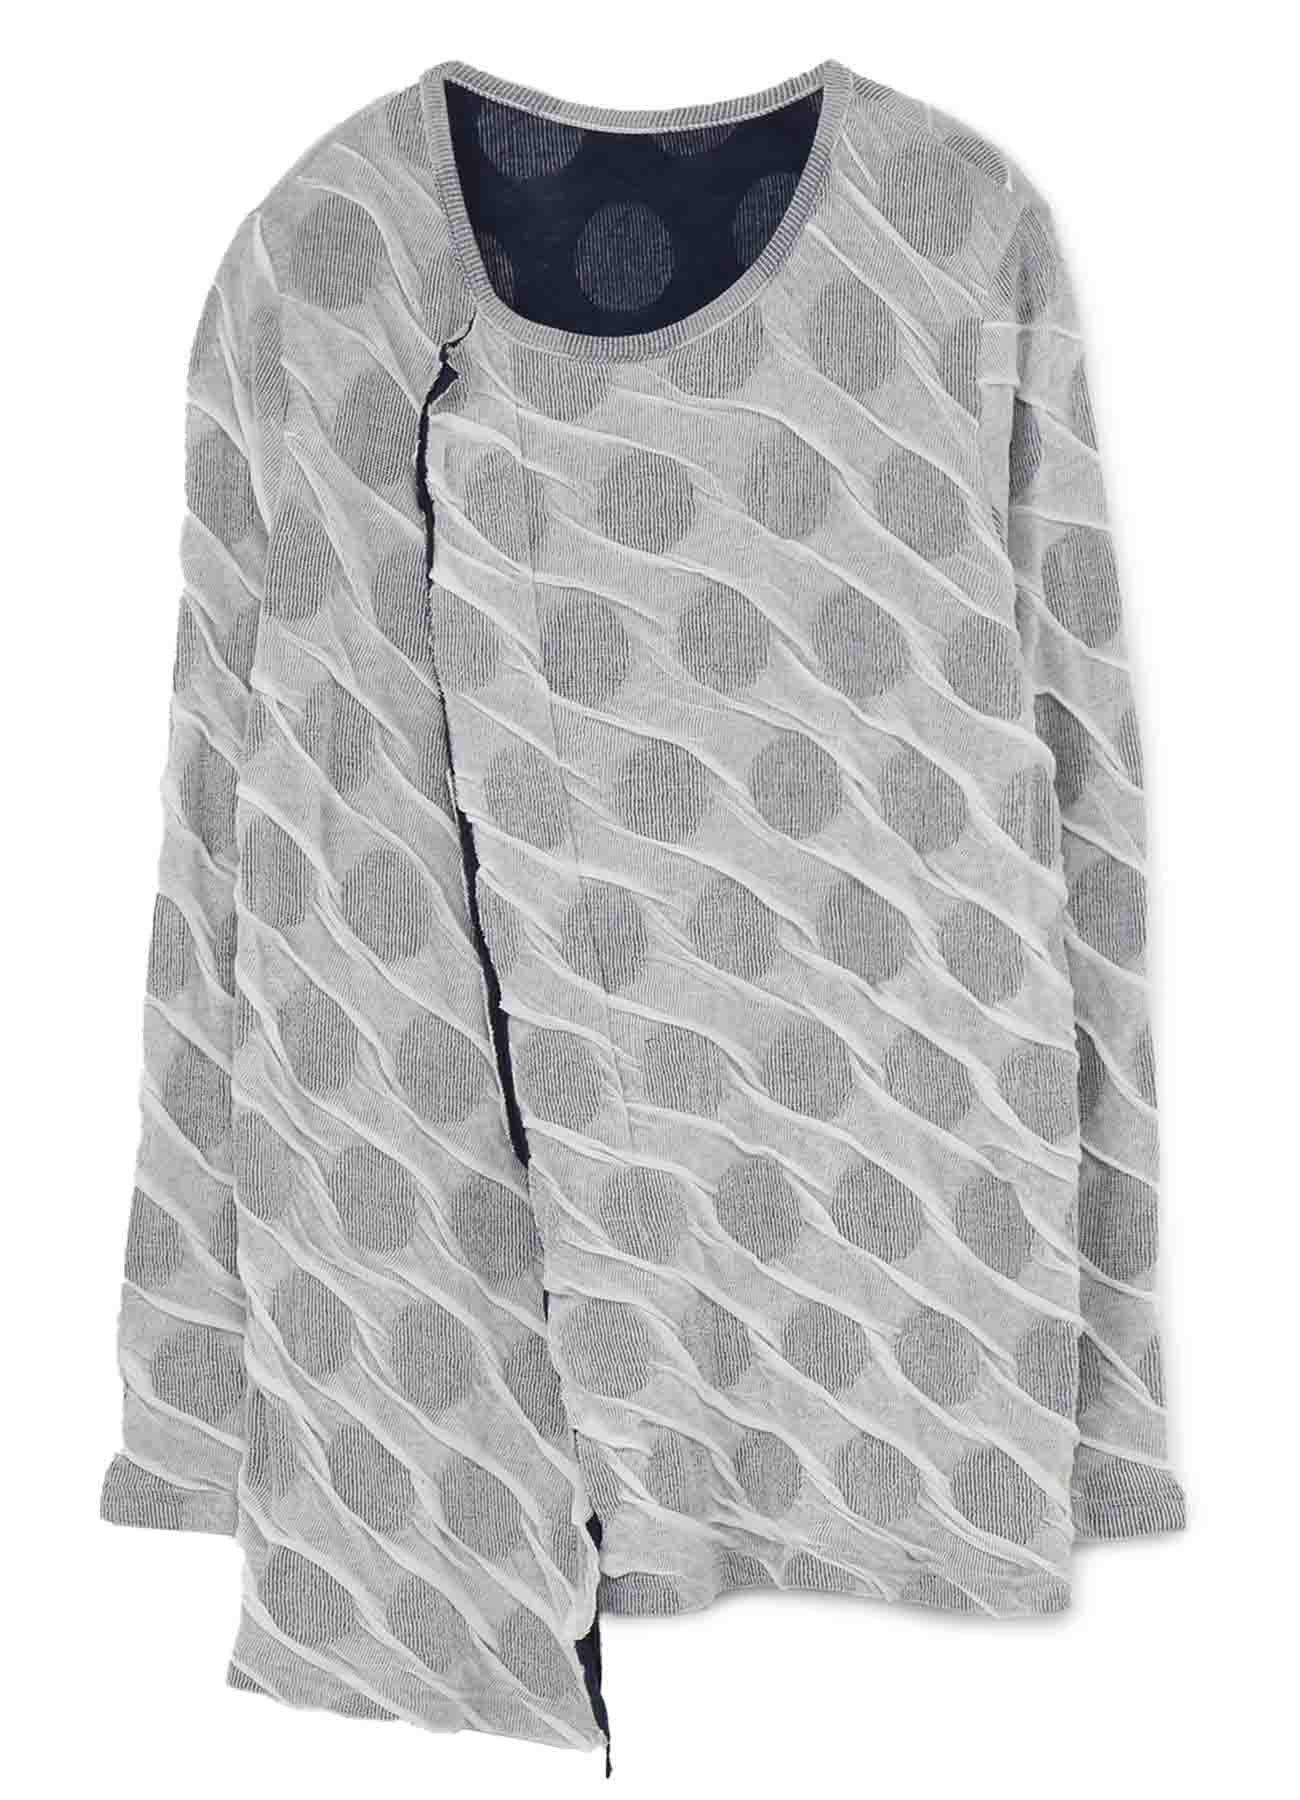 DOT DUAL-LAYER ROUND NECK CUTTING T